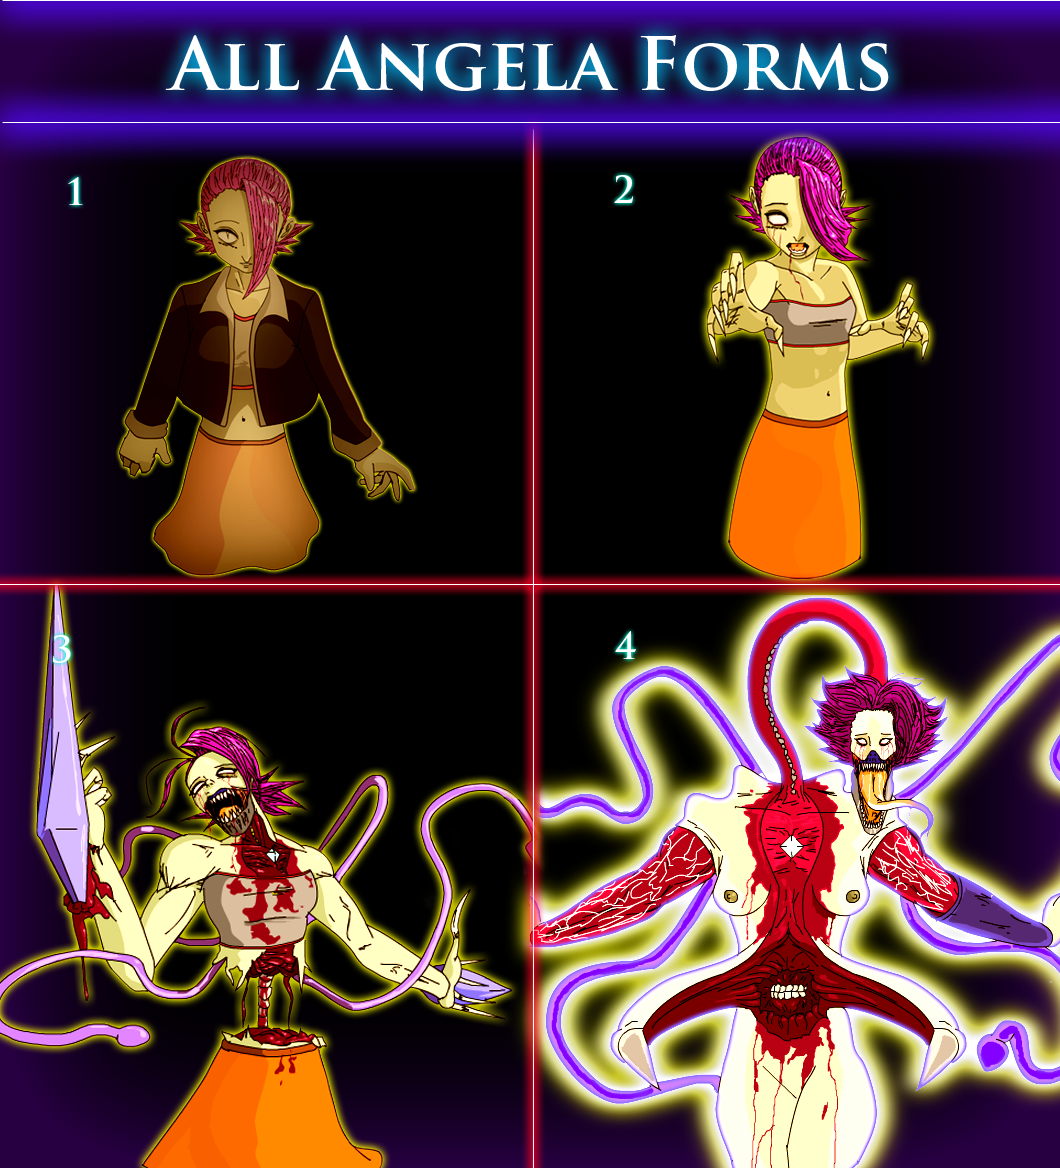 All Angela Forms Vers. 3